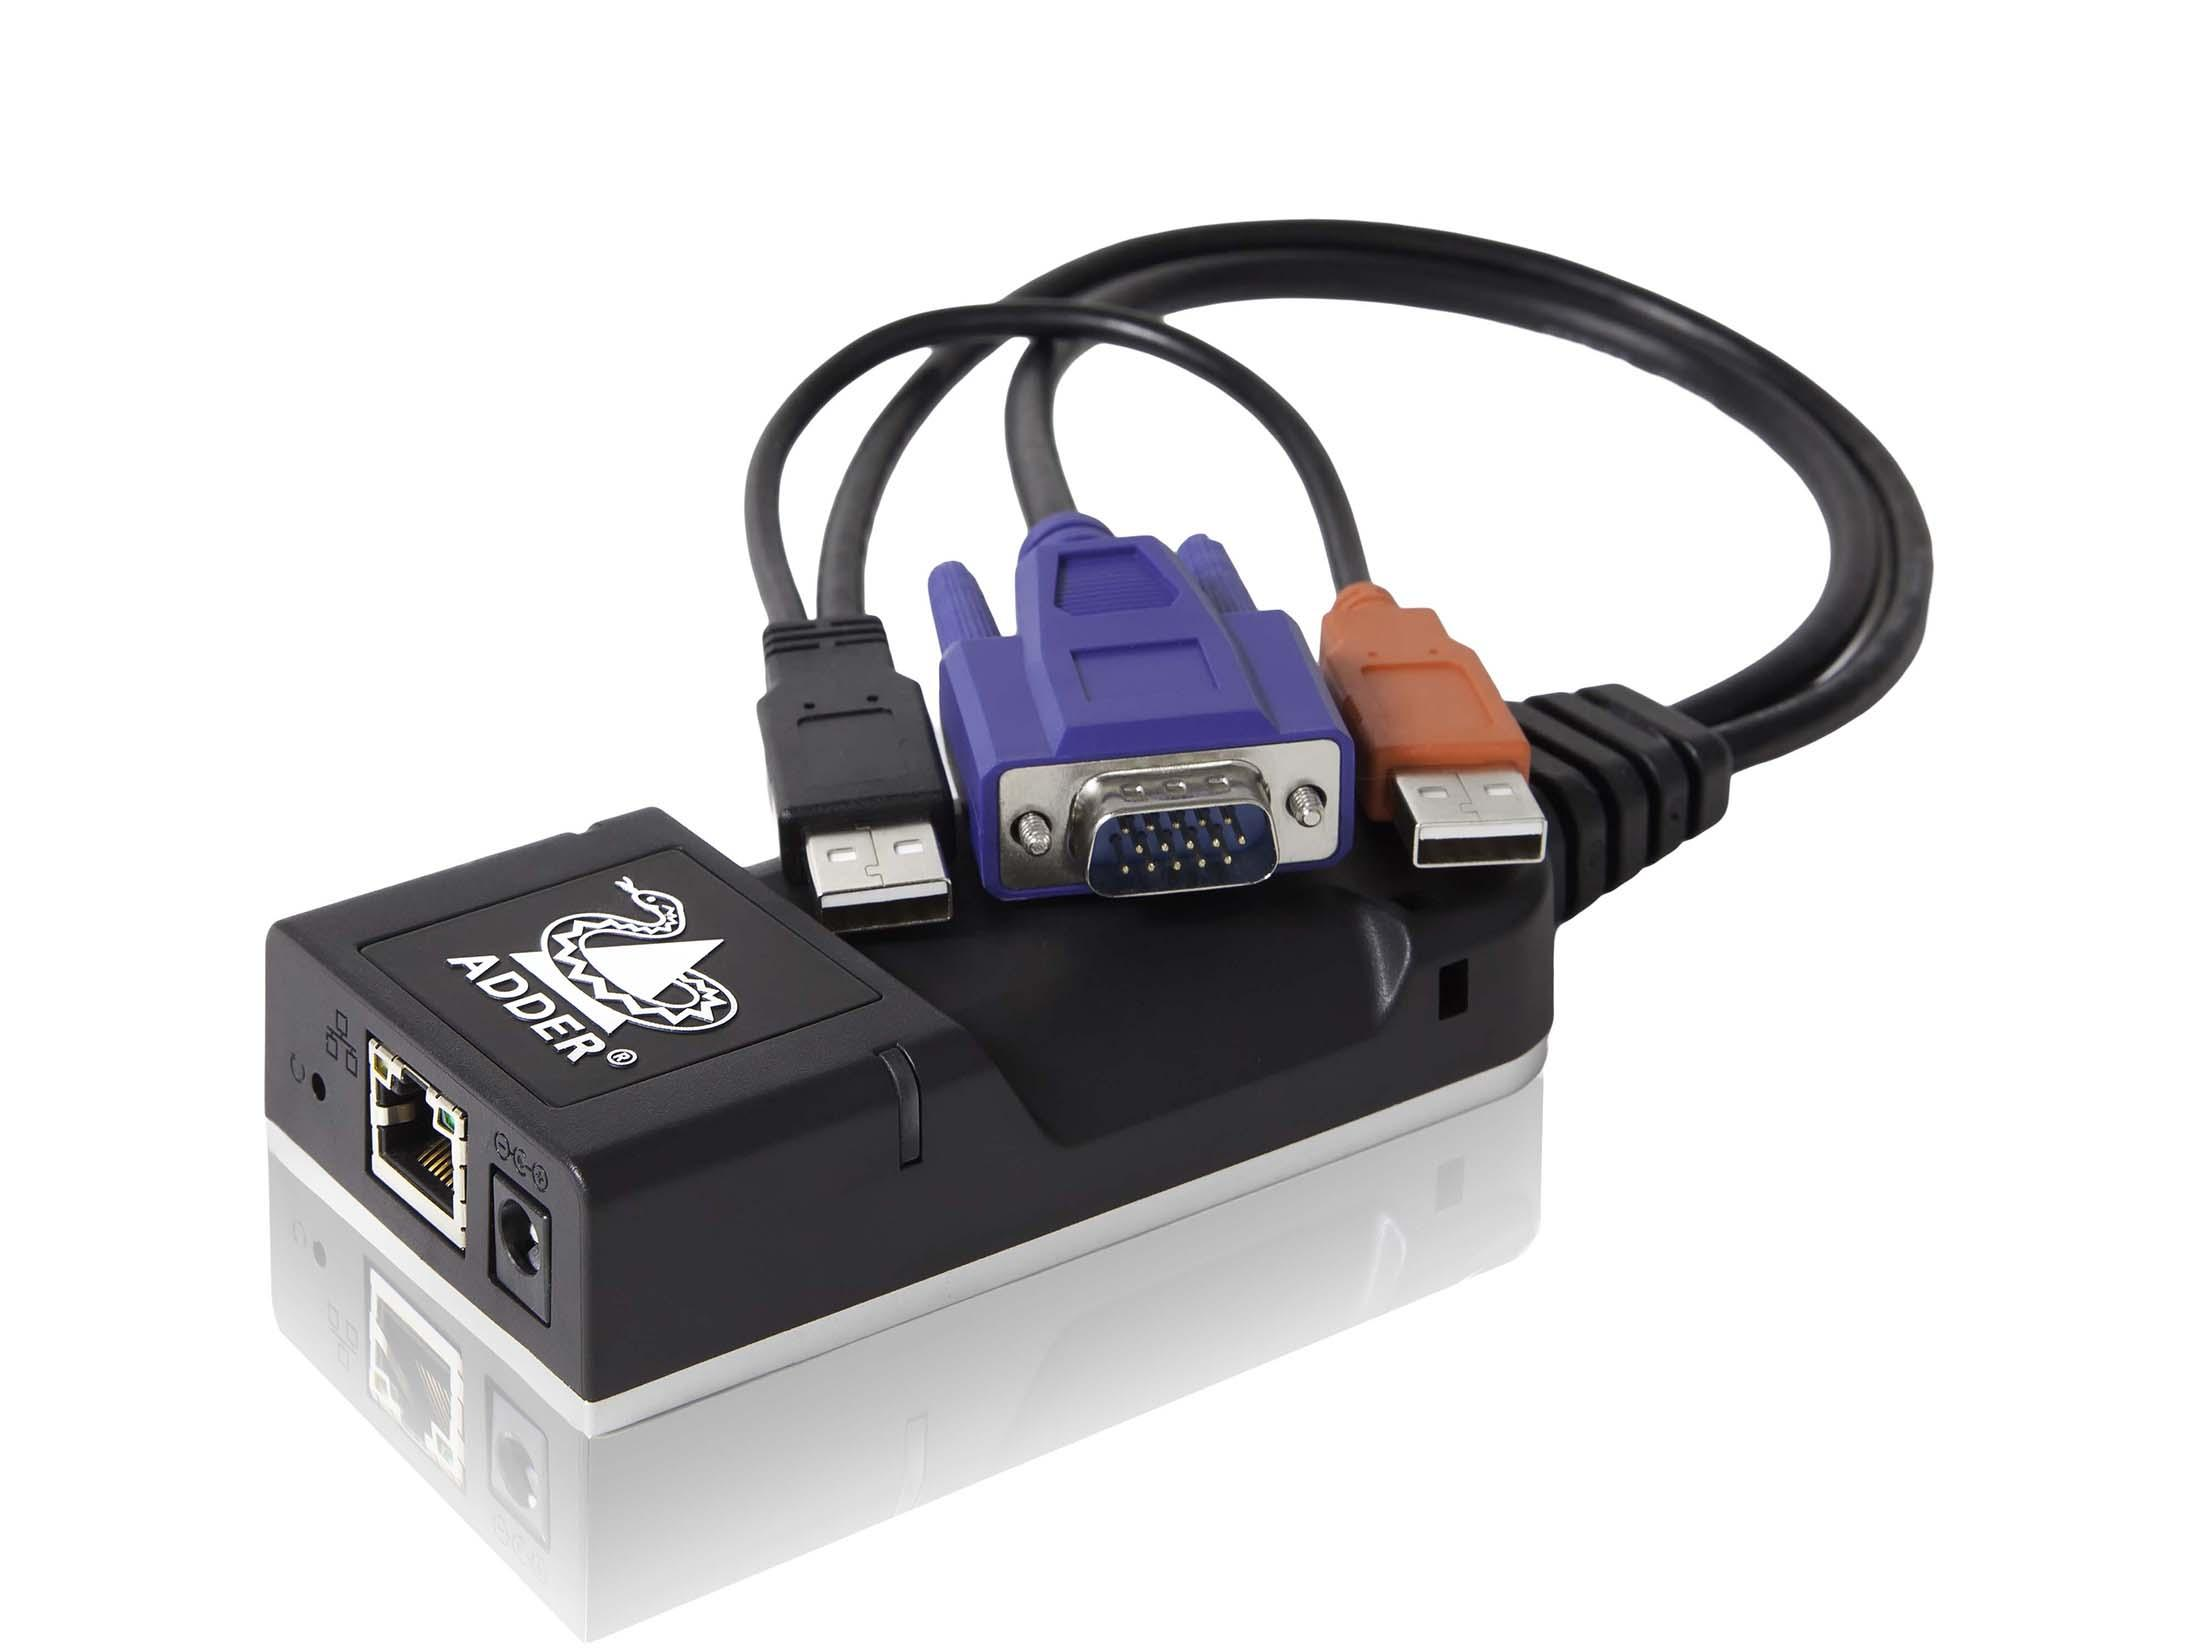 Adder ALIF100T-VGA Zero U form factor IP-based VGA/KVM Extender (Transmitter) with USB